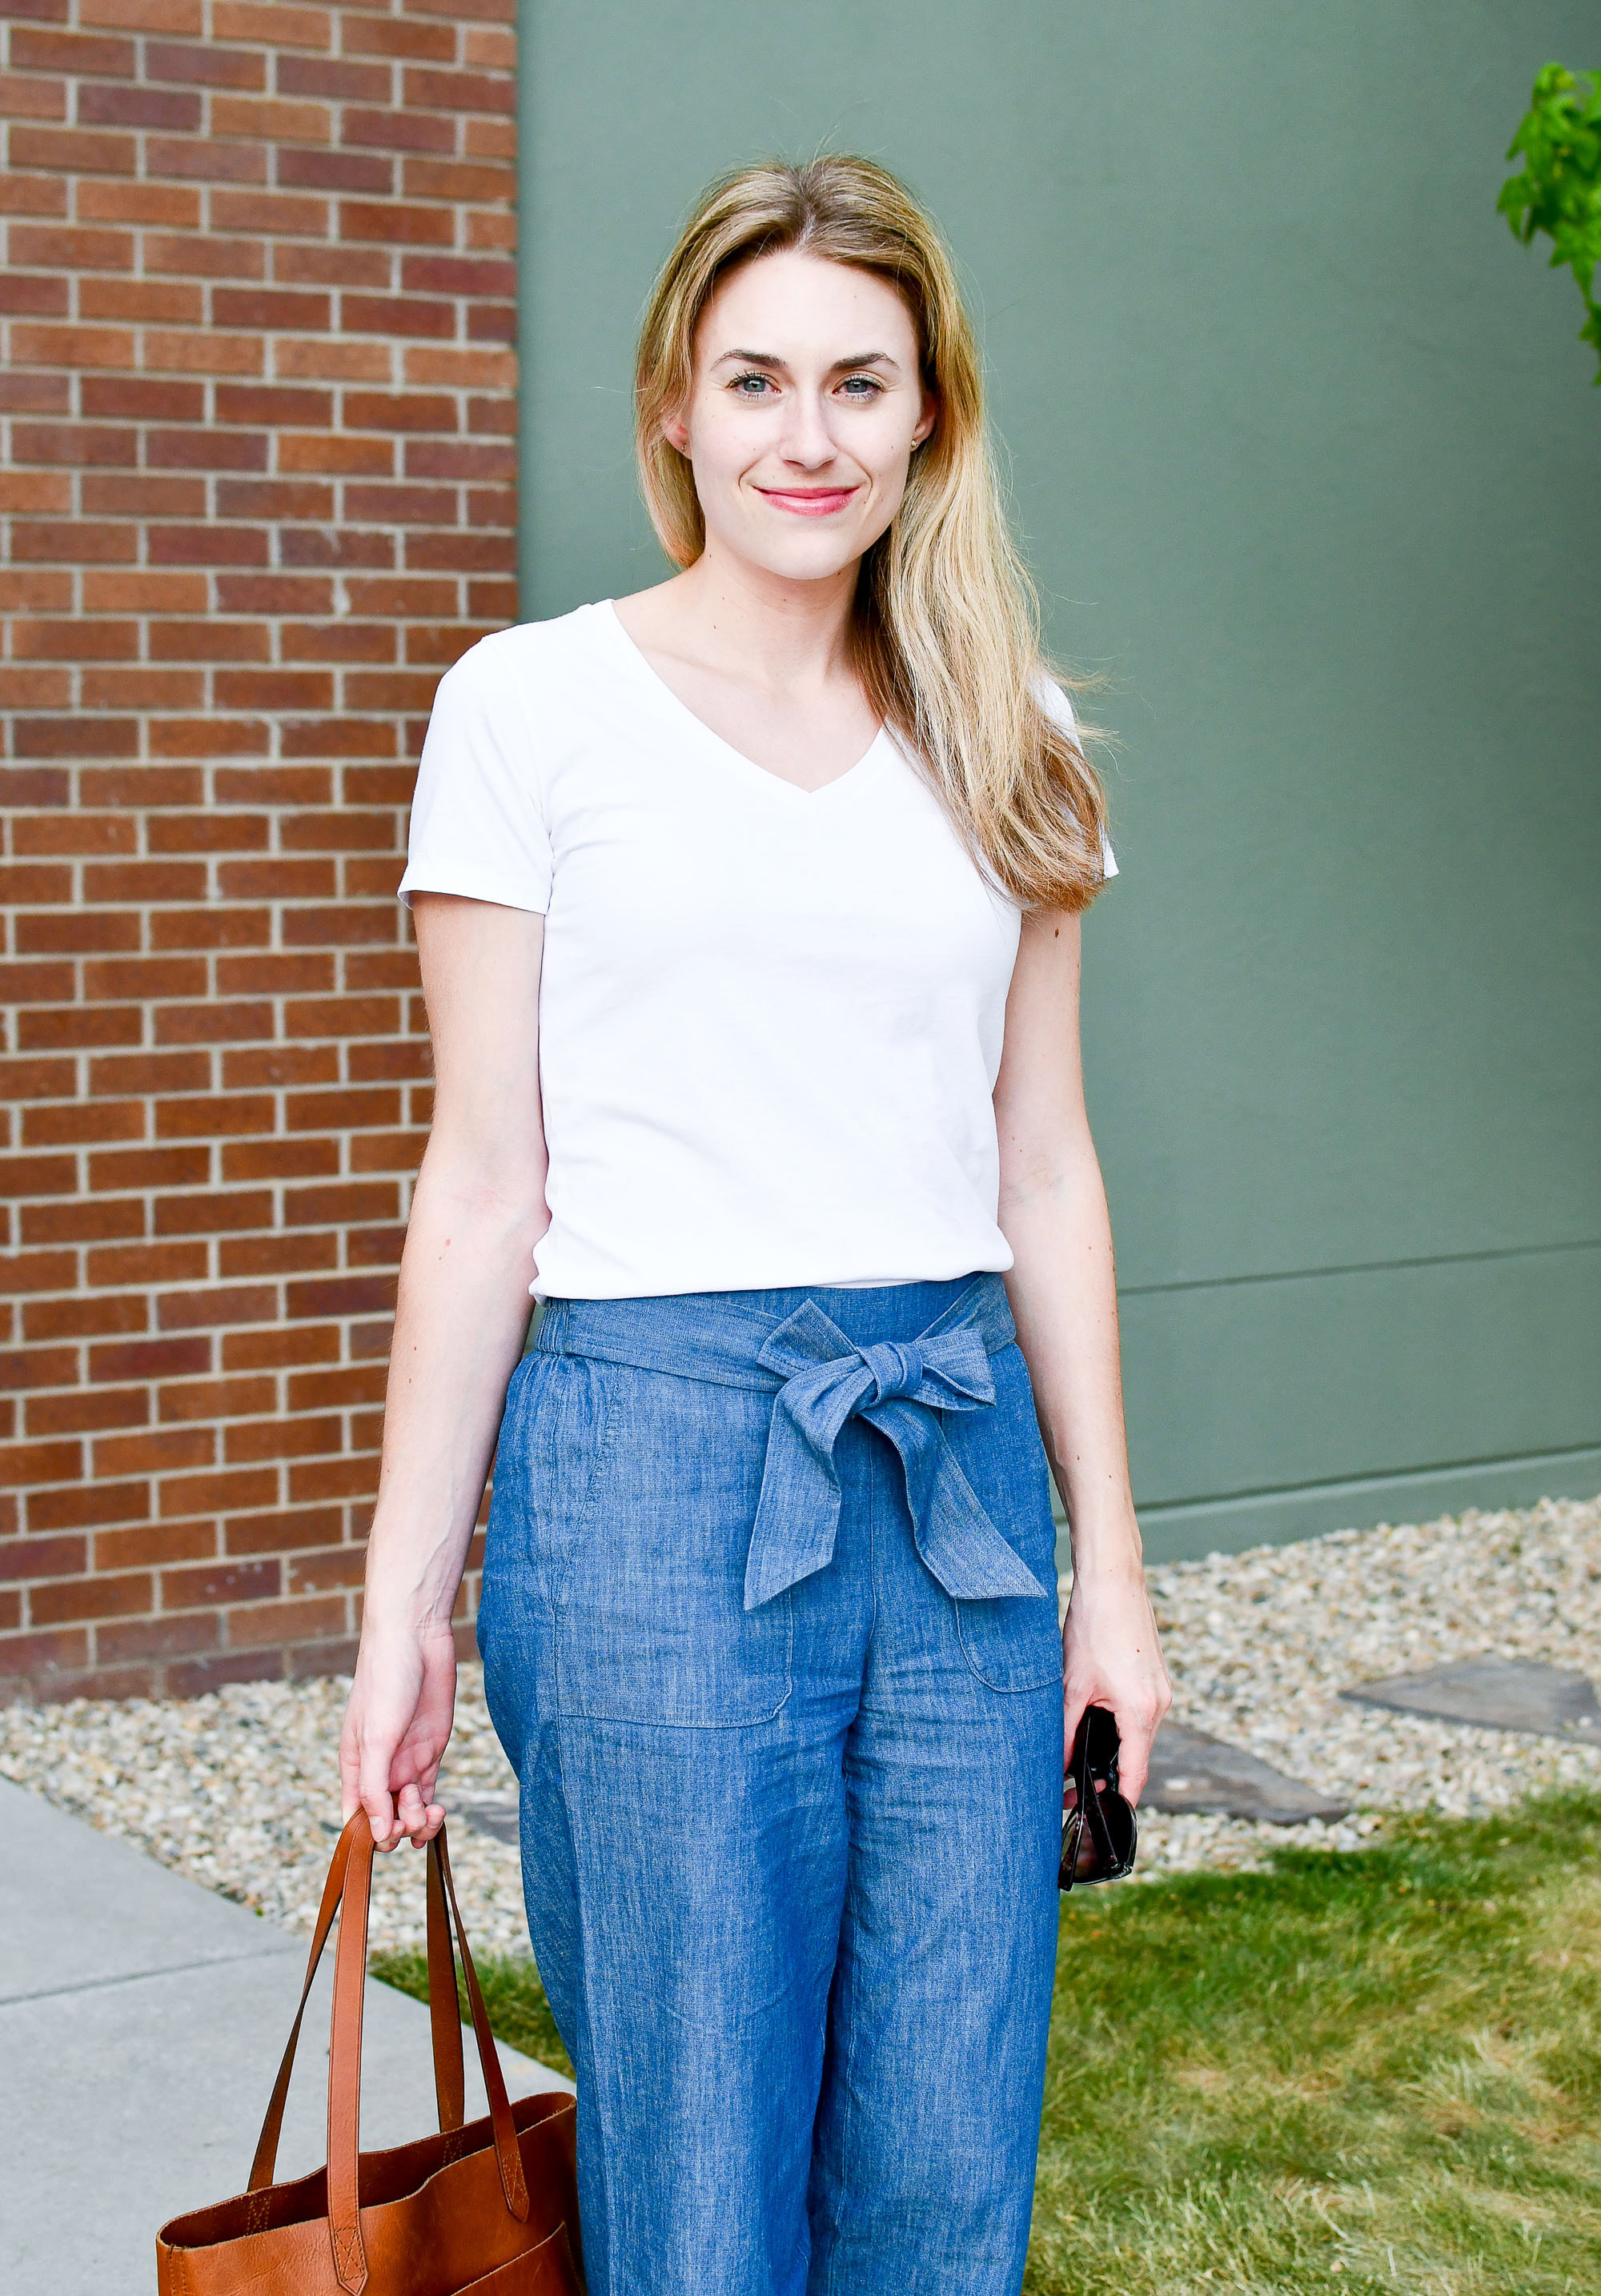 Grana white v-neck tee spring outfit — Cotton Cashmere Cat Hair